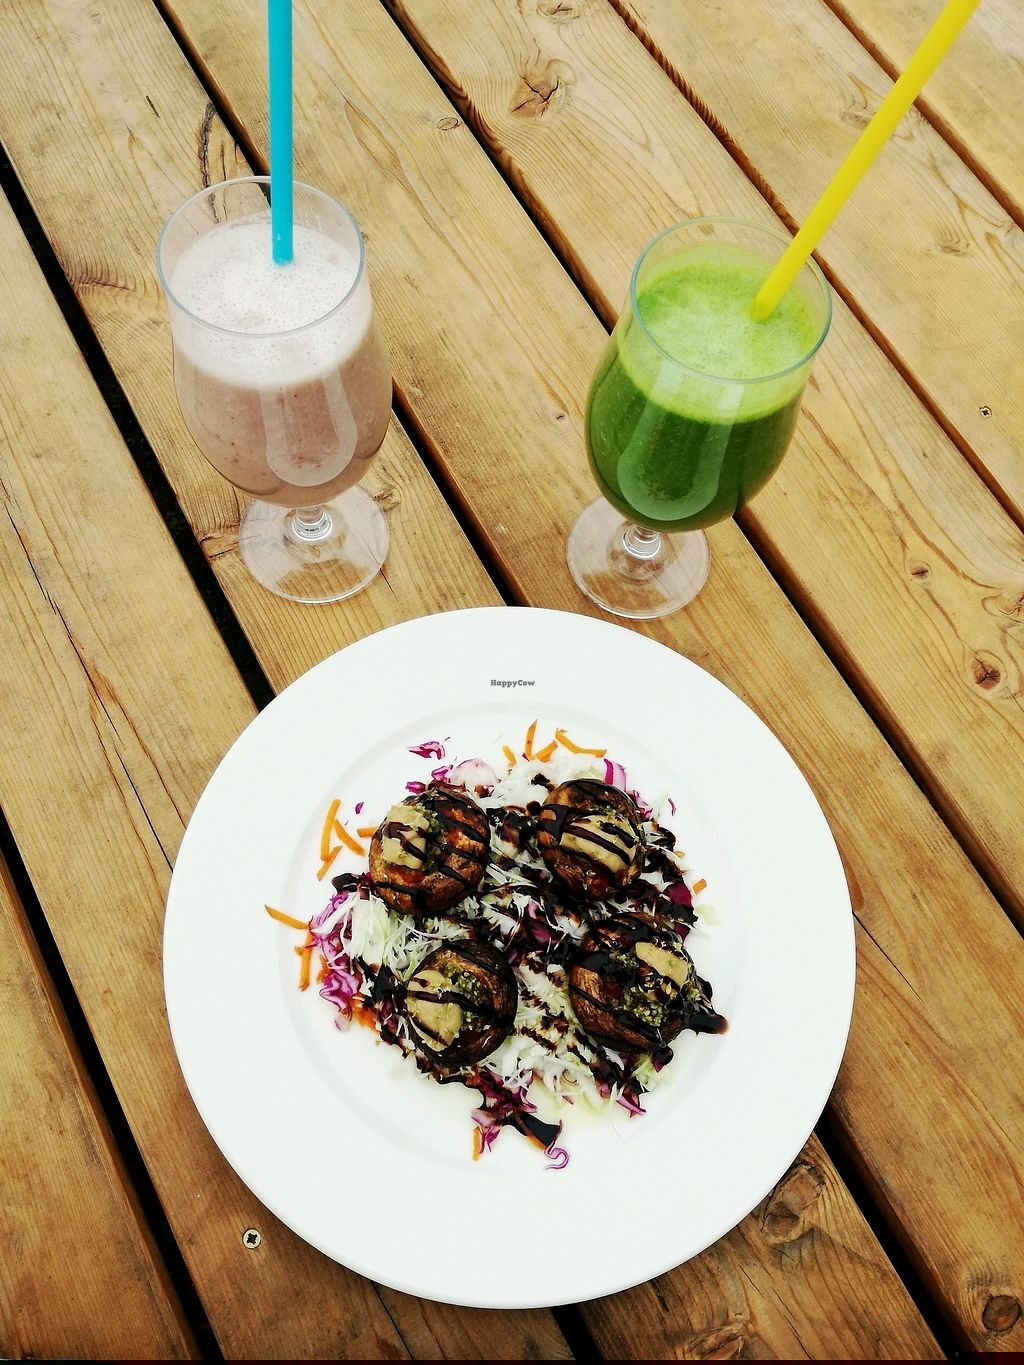 "Photo of Art of Raw at The Garden Lounge  by <a href=""/members/profile/AdrianaXavier"">AdrianaXavier</a> <br/>stuffed mushroom, berry smothie and spinach and banana smoothie <br/> August 28, 2017  - <a href='/contact/abuse/image/60410/298308'>Report</a>"